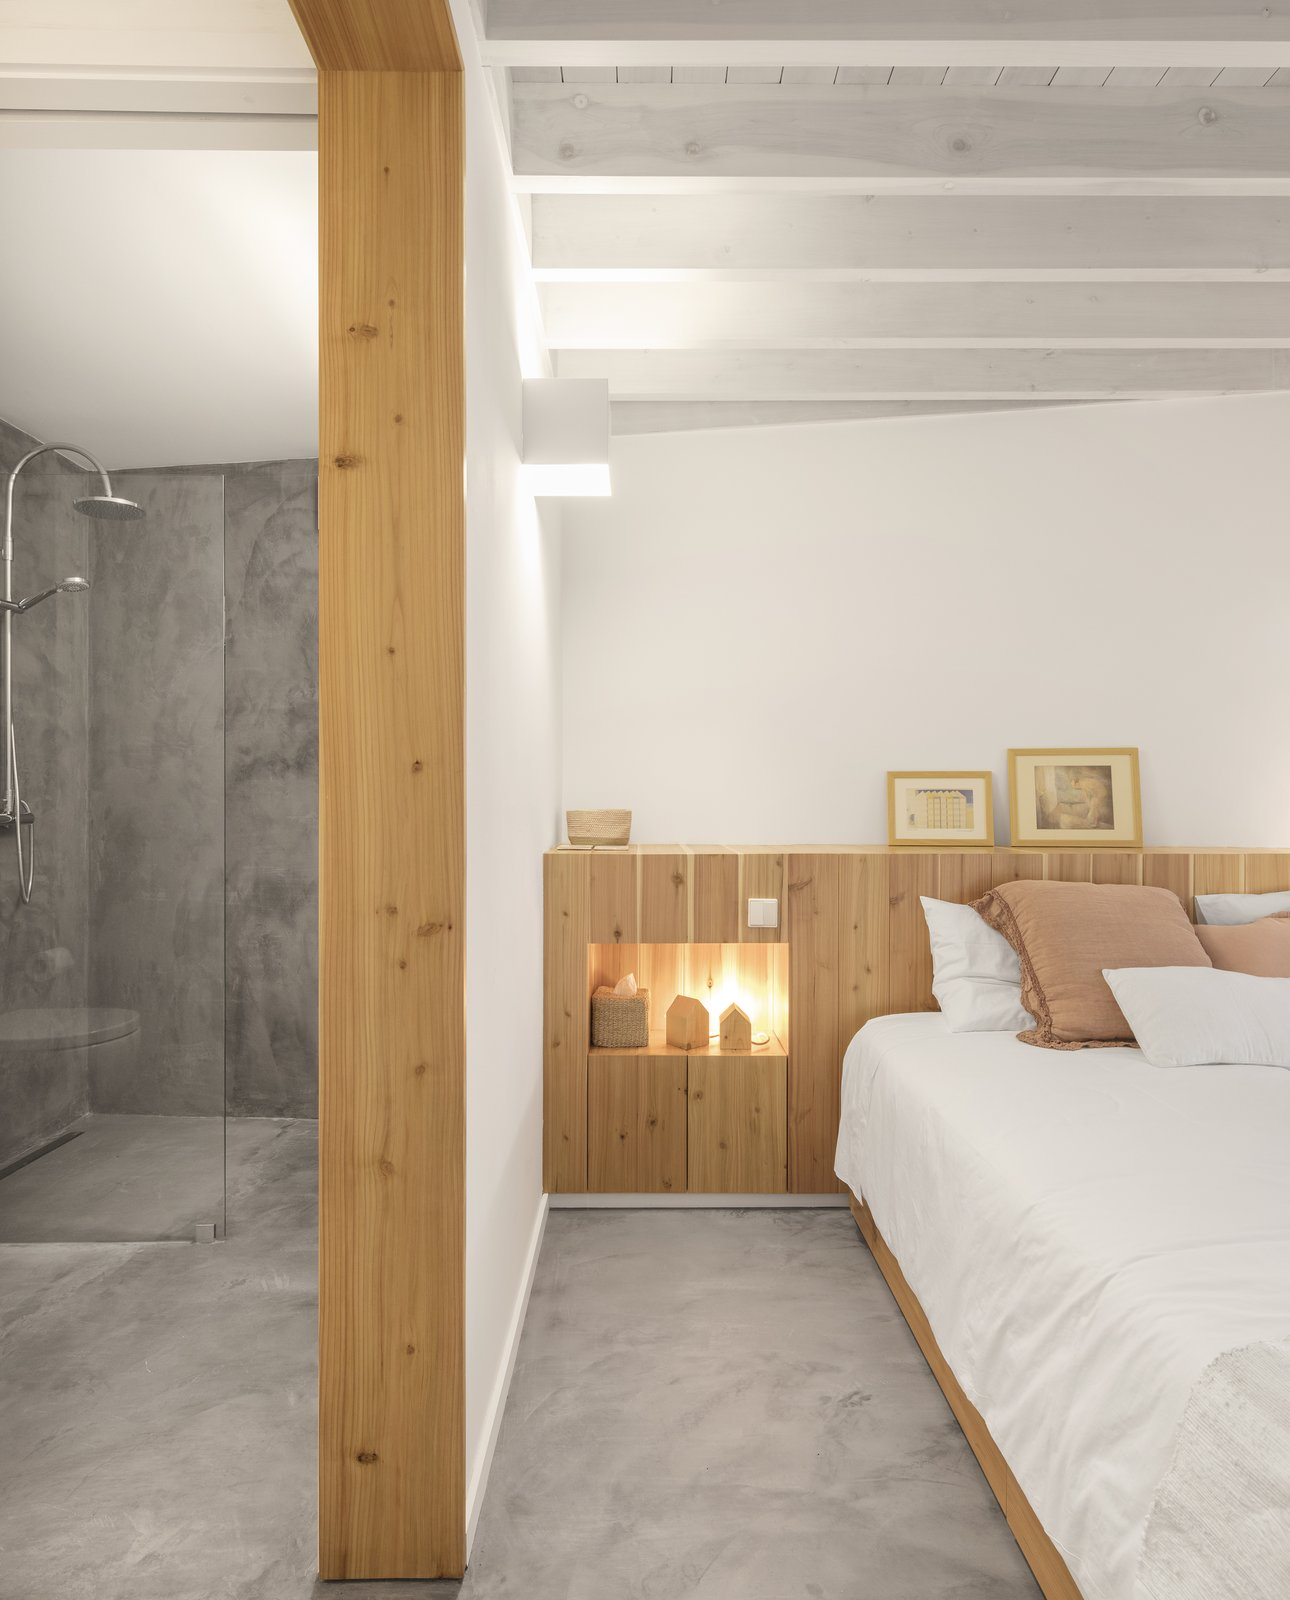 bedroom with small wood house shaped lamps in an inset wood bedside shelf